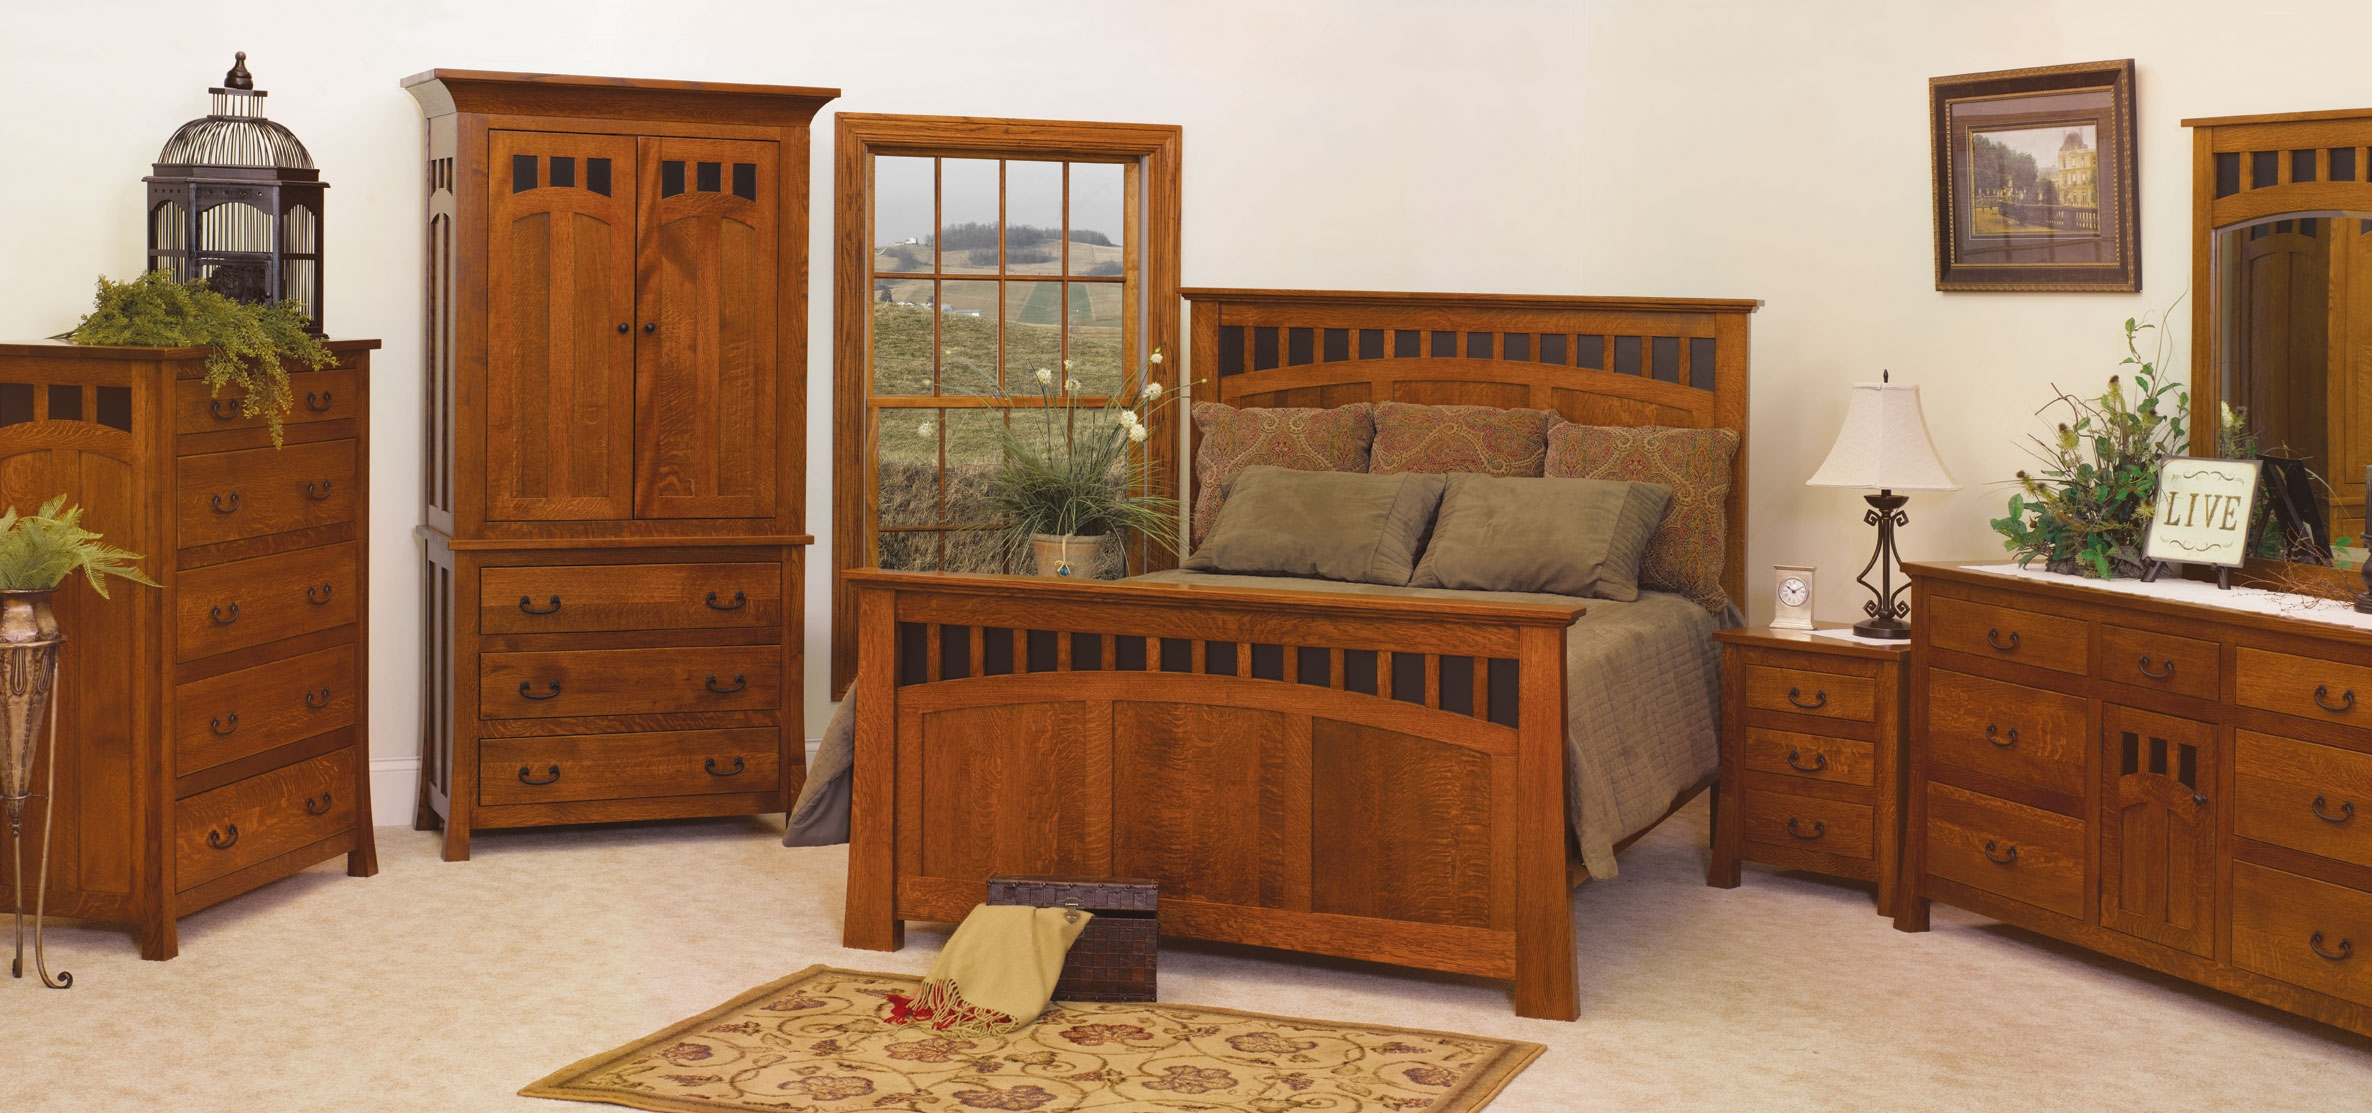 Beautiful stunning mission style bedroom furniture photos amazing home . mission ... xzkbhrk